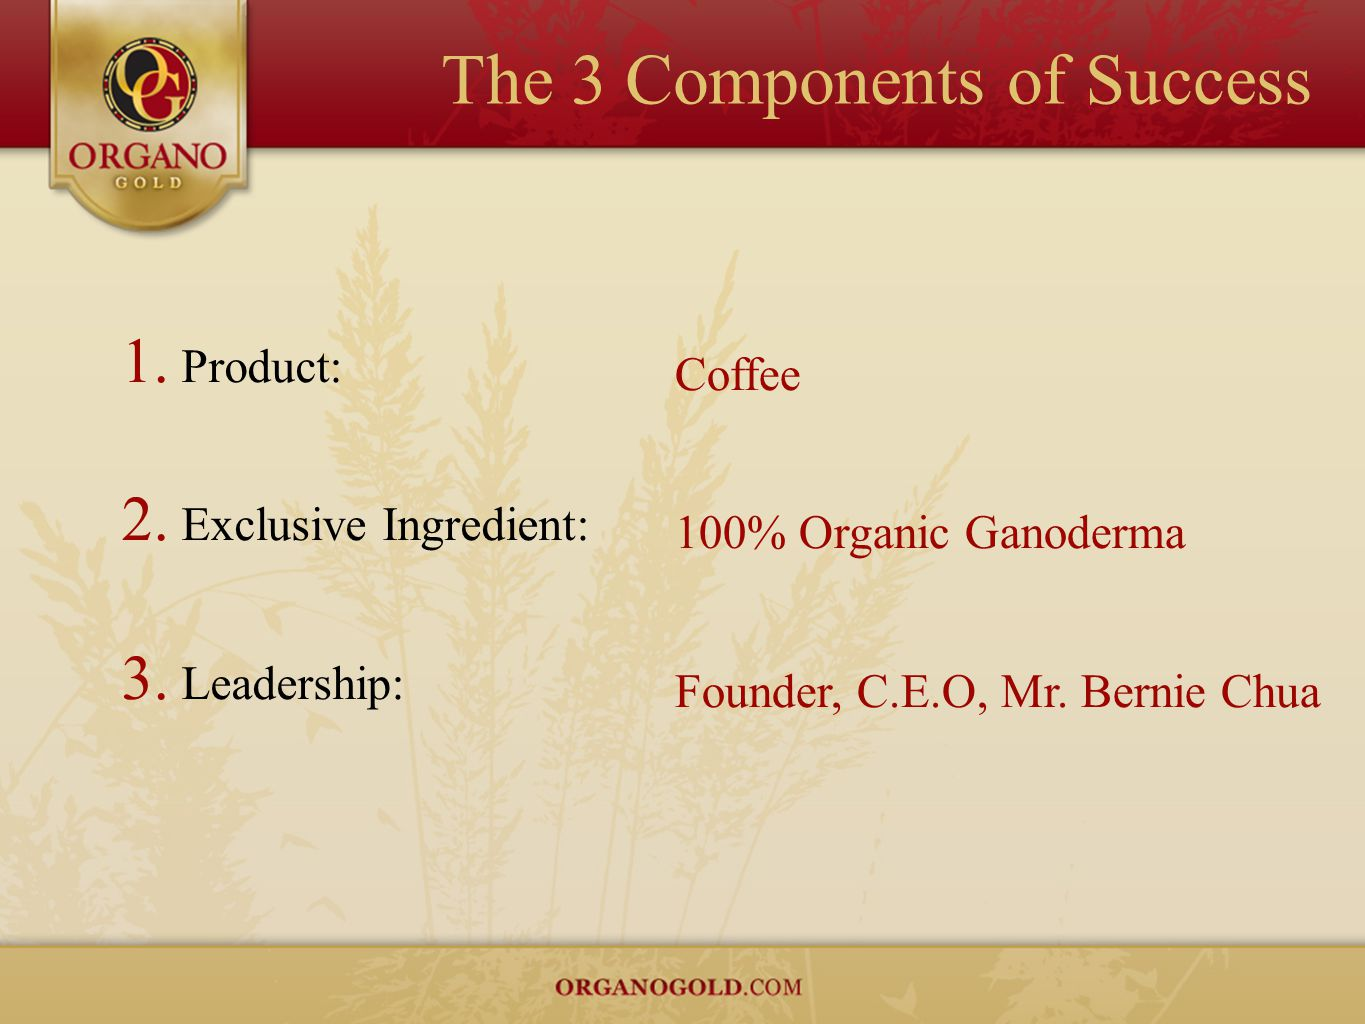 The 3 Components of Success